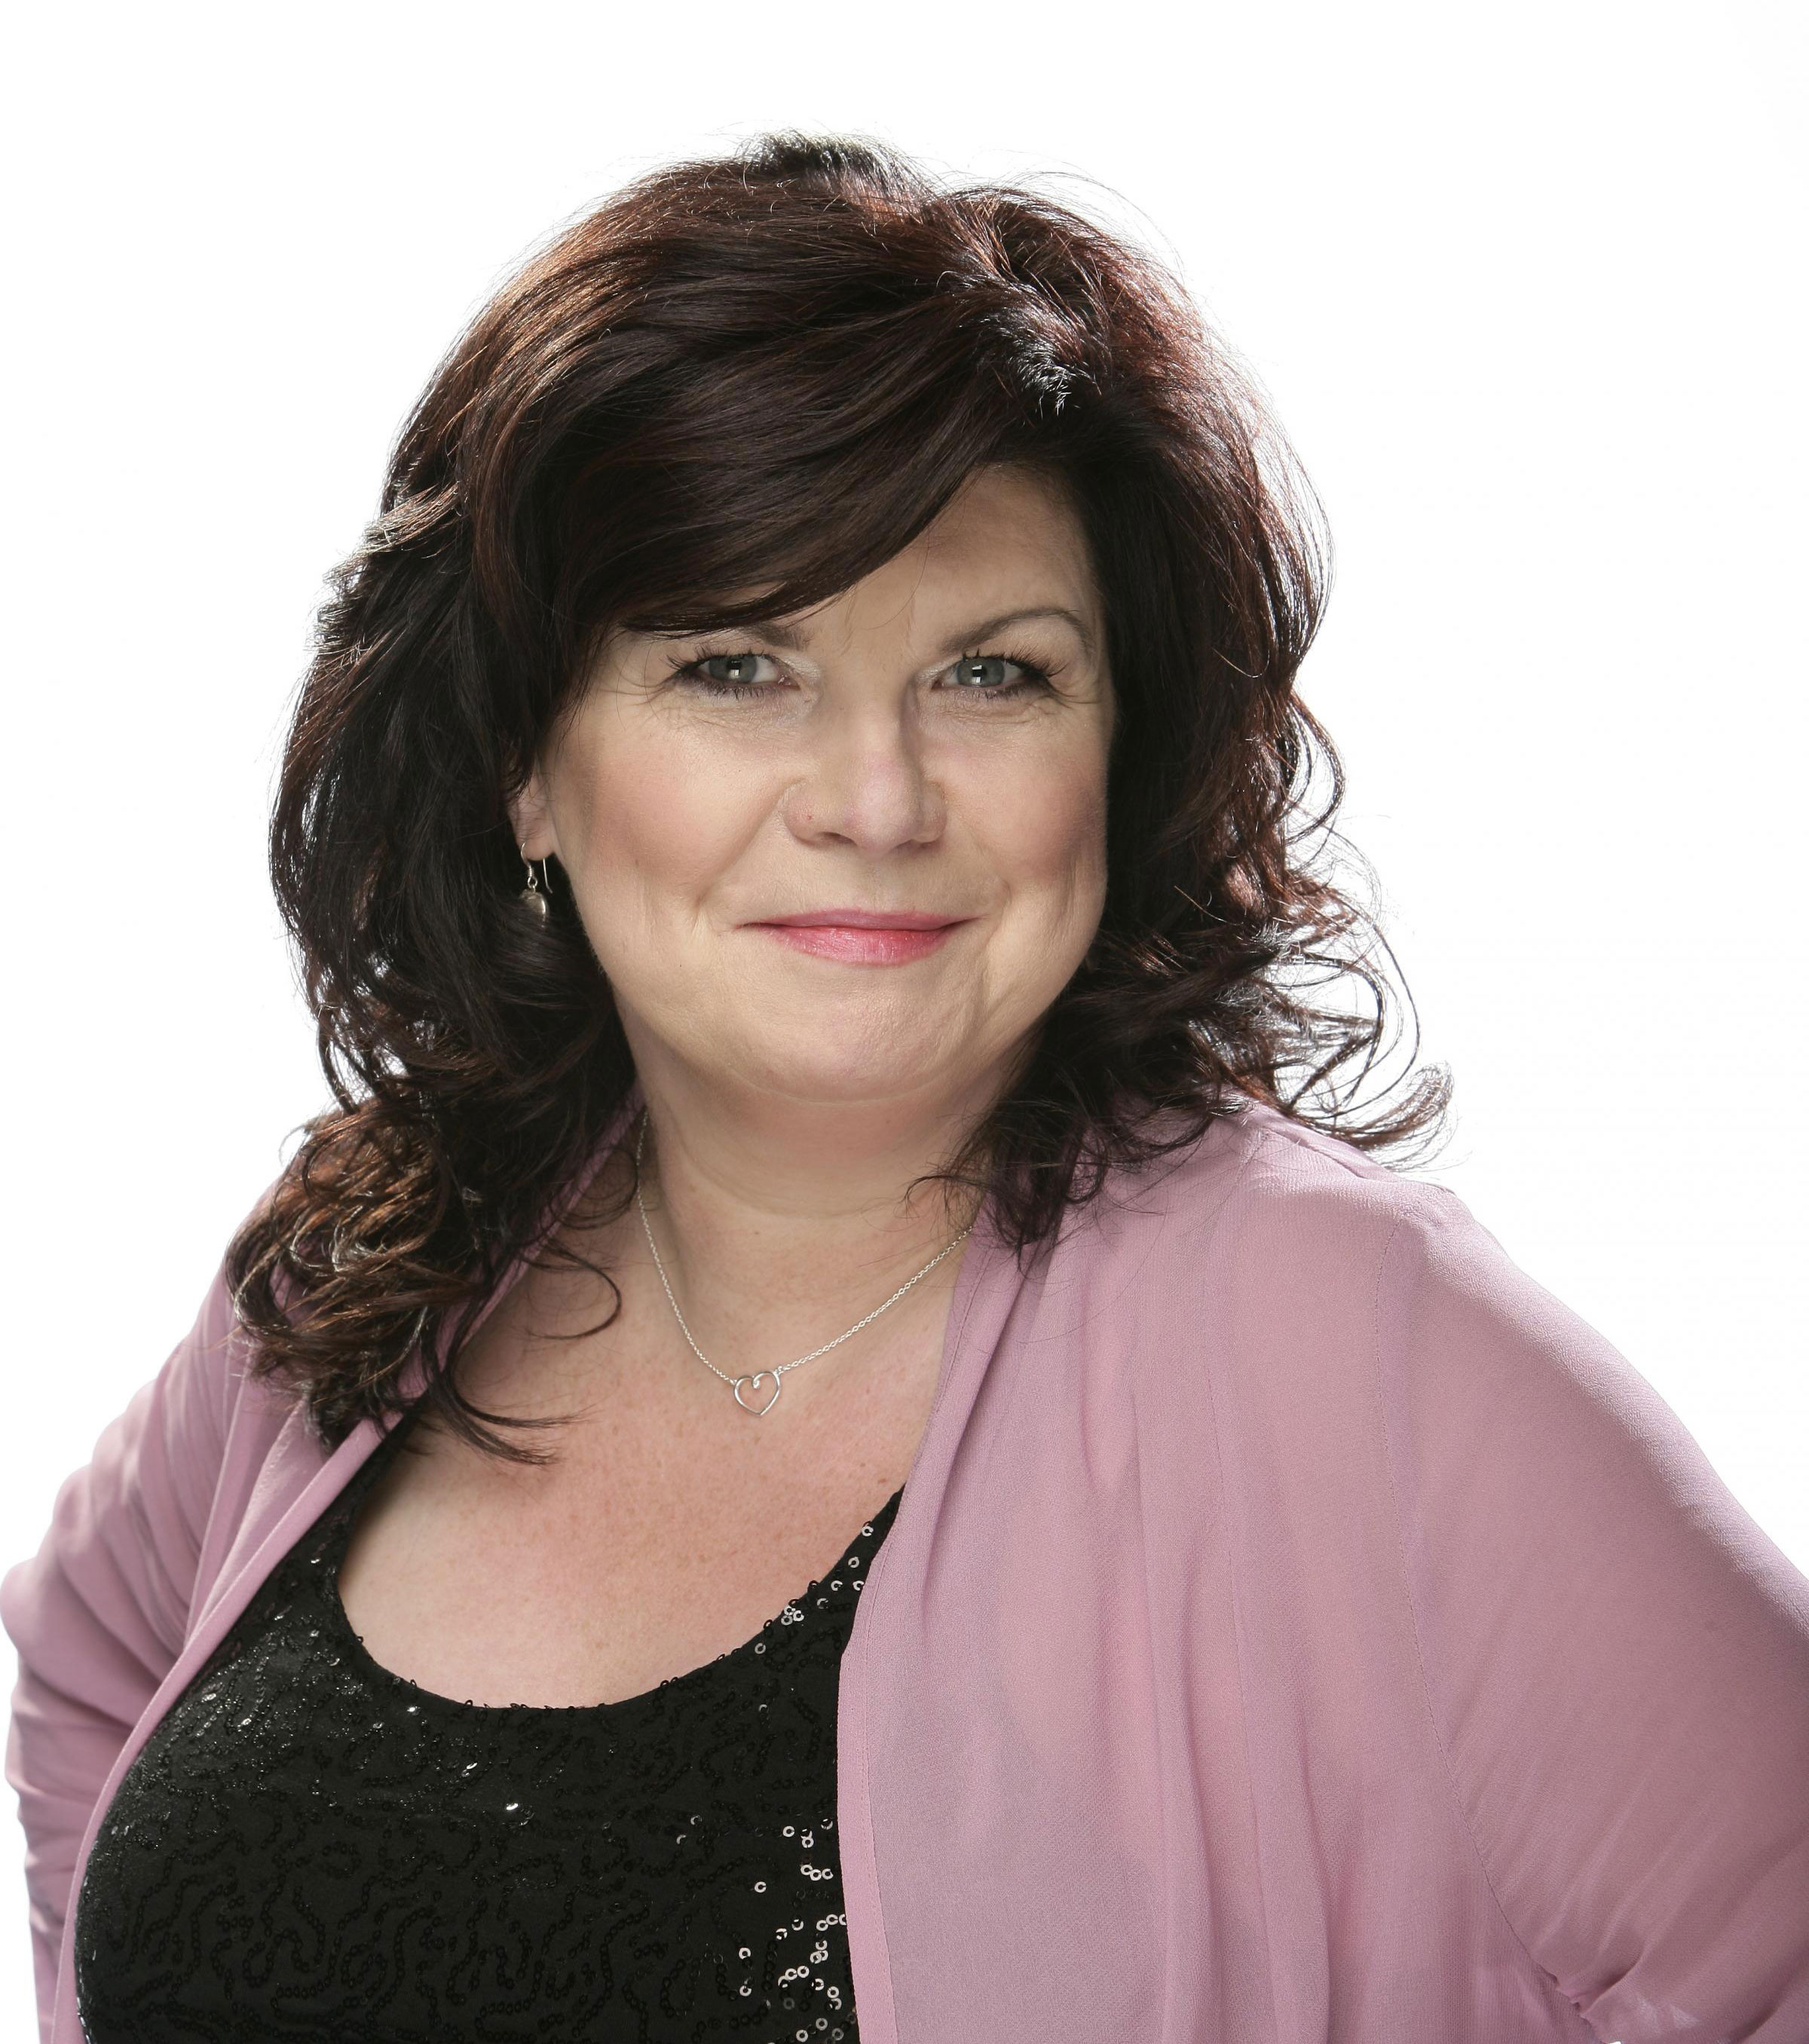 Elaine C. Smith naked (83 photos), Ass, Is a cute, Twitter, underwear 2017